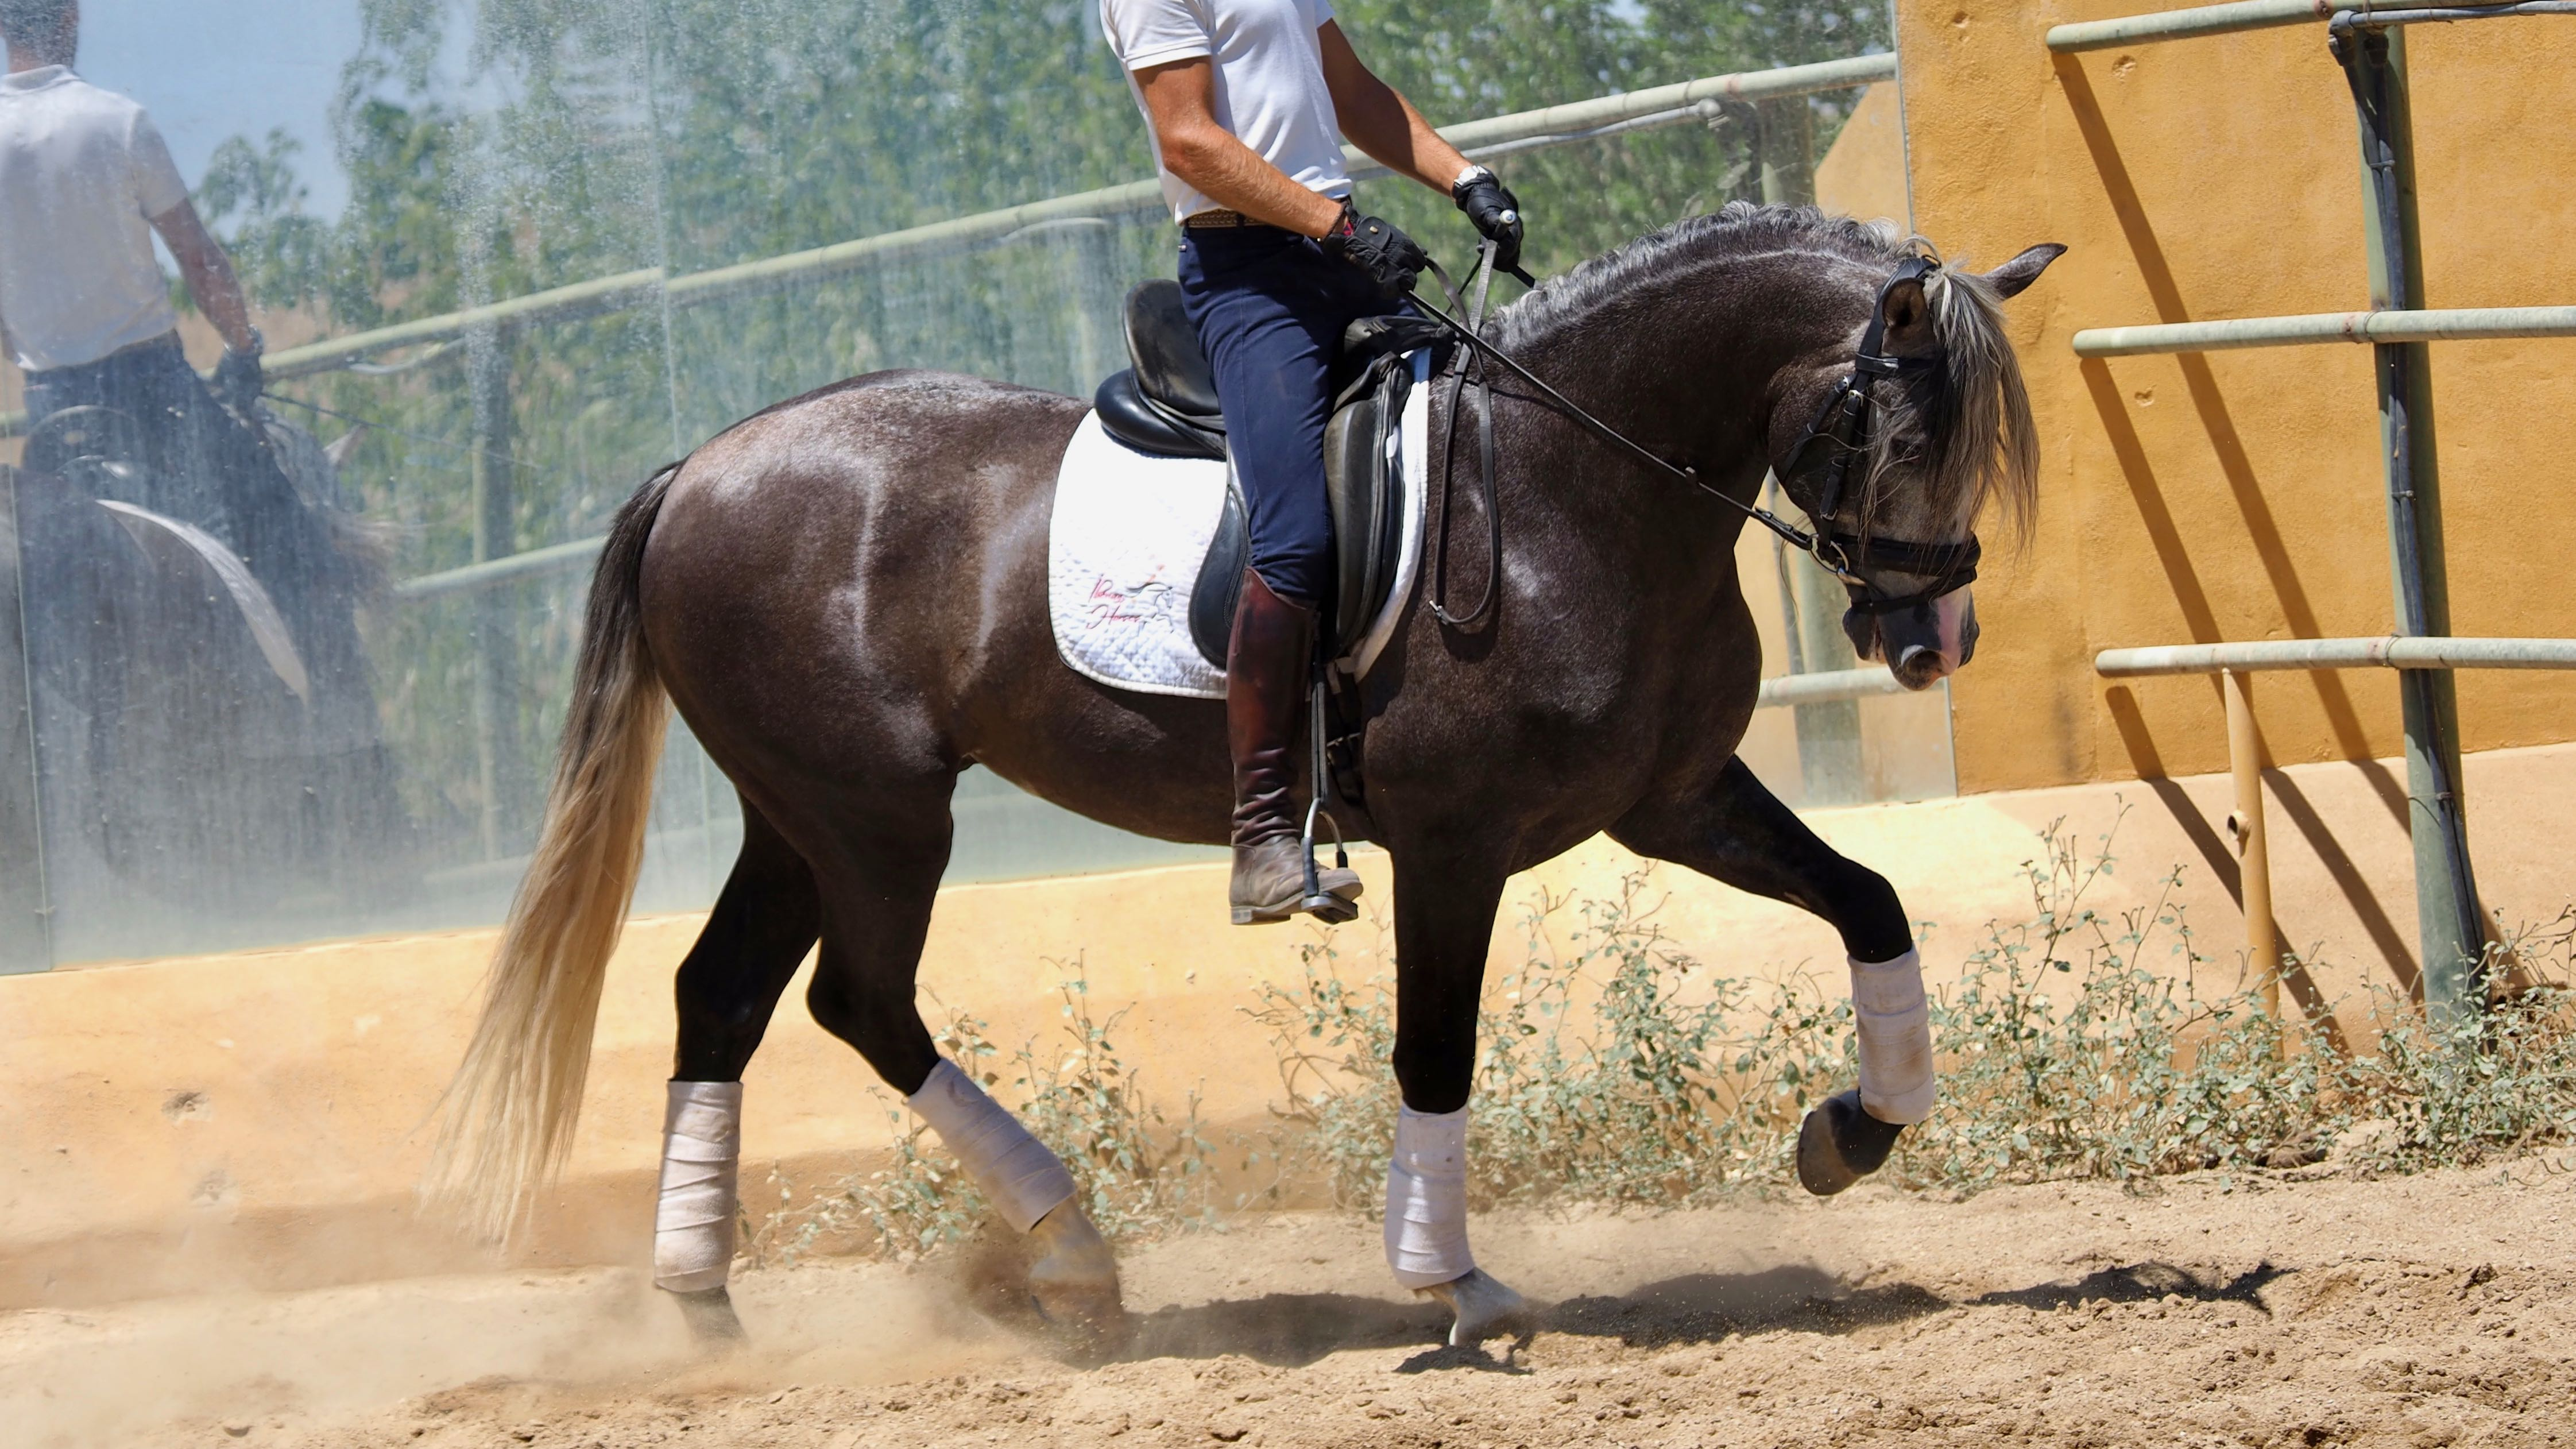 Beautiful Andalusian horse very noble. Cod. 9371